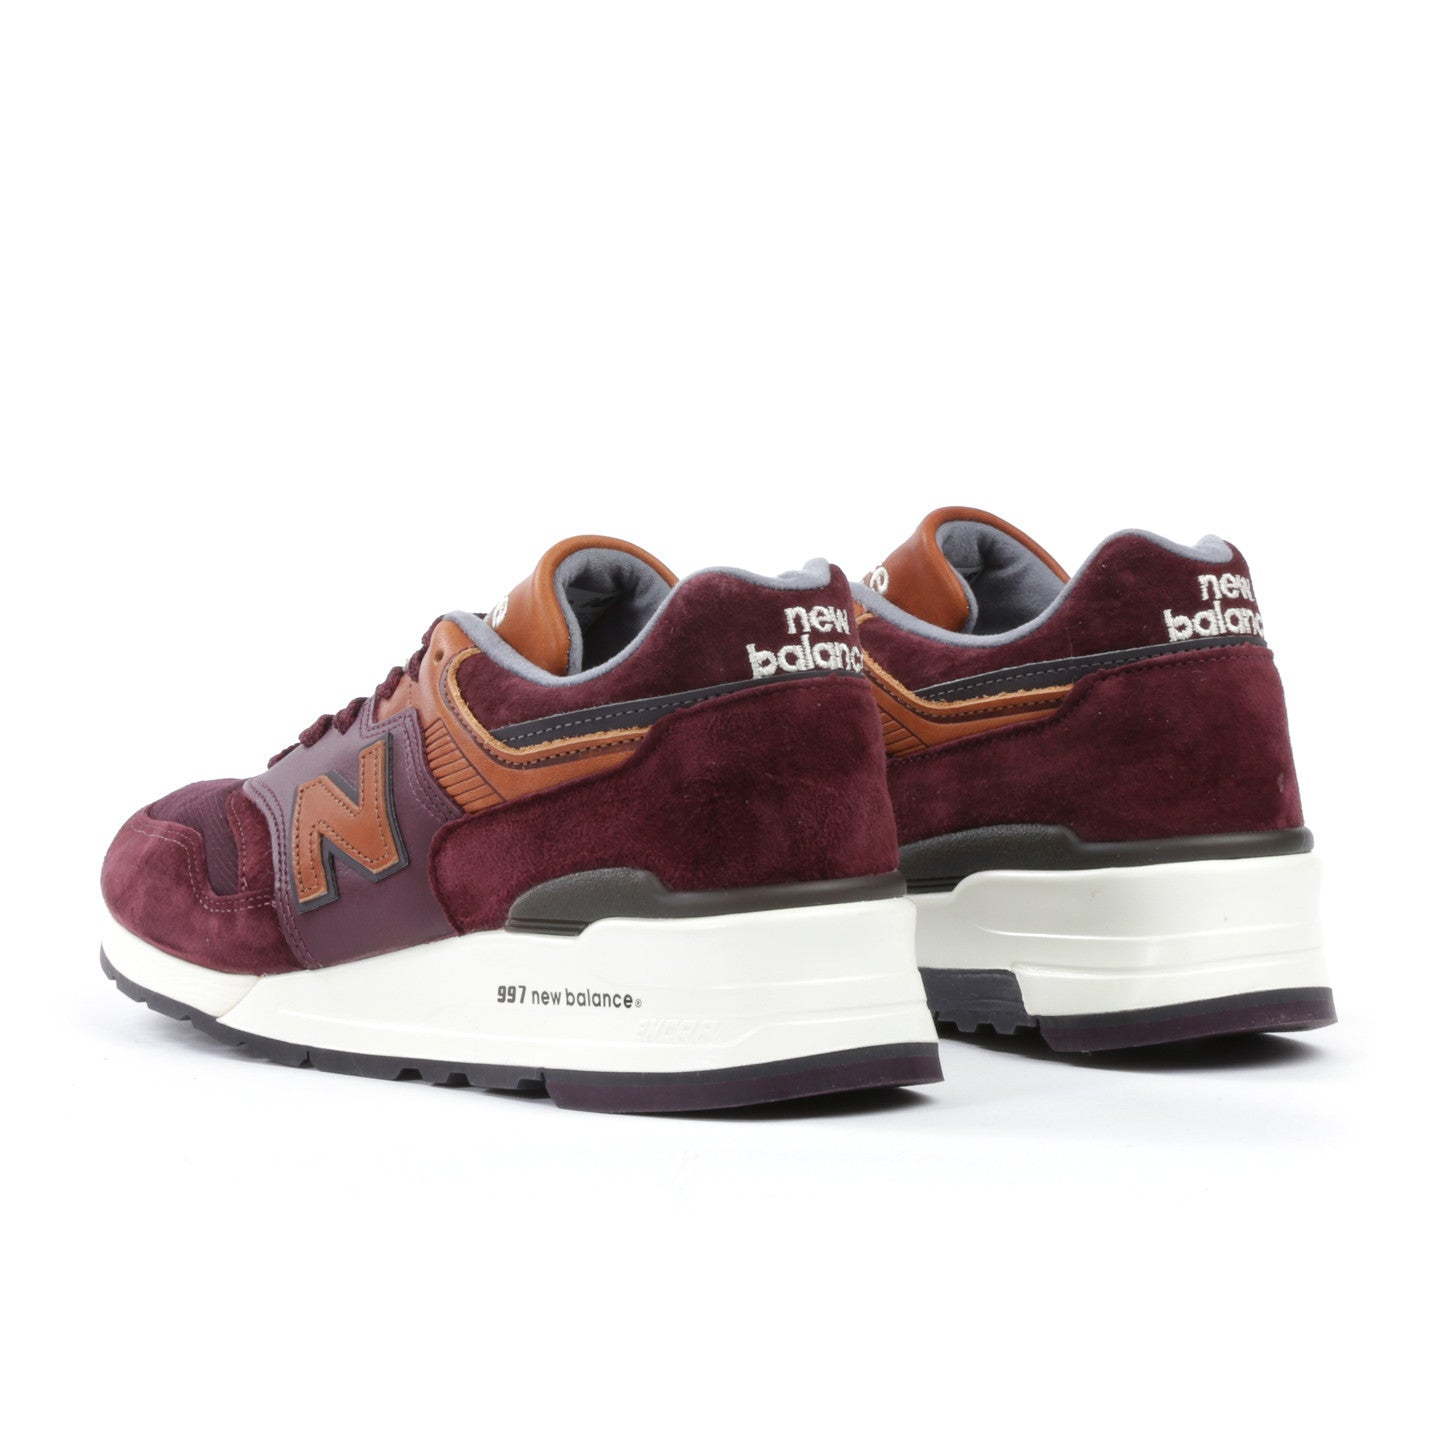 NEW BALANCE 997 DISTINCT RETRO SKI